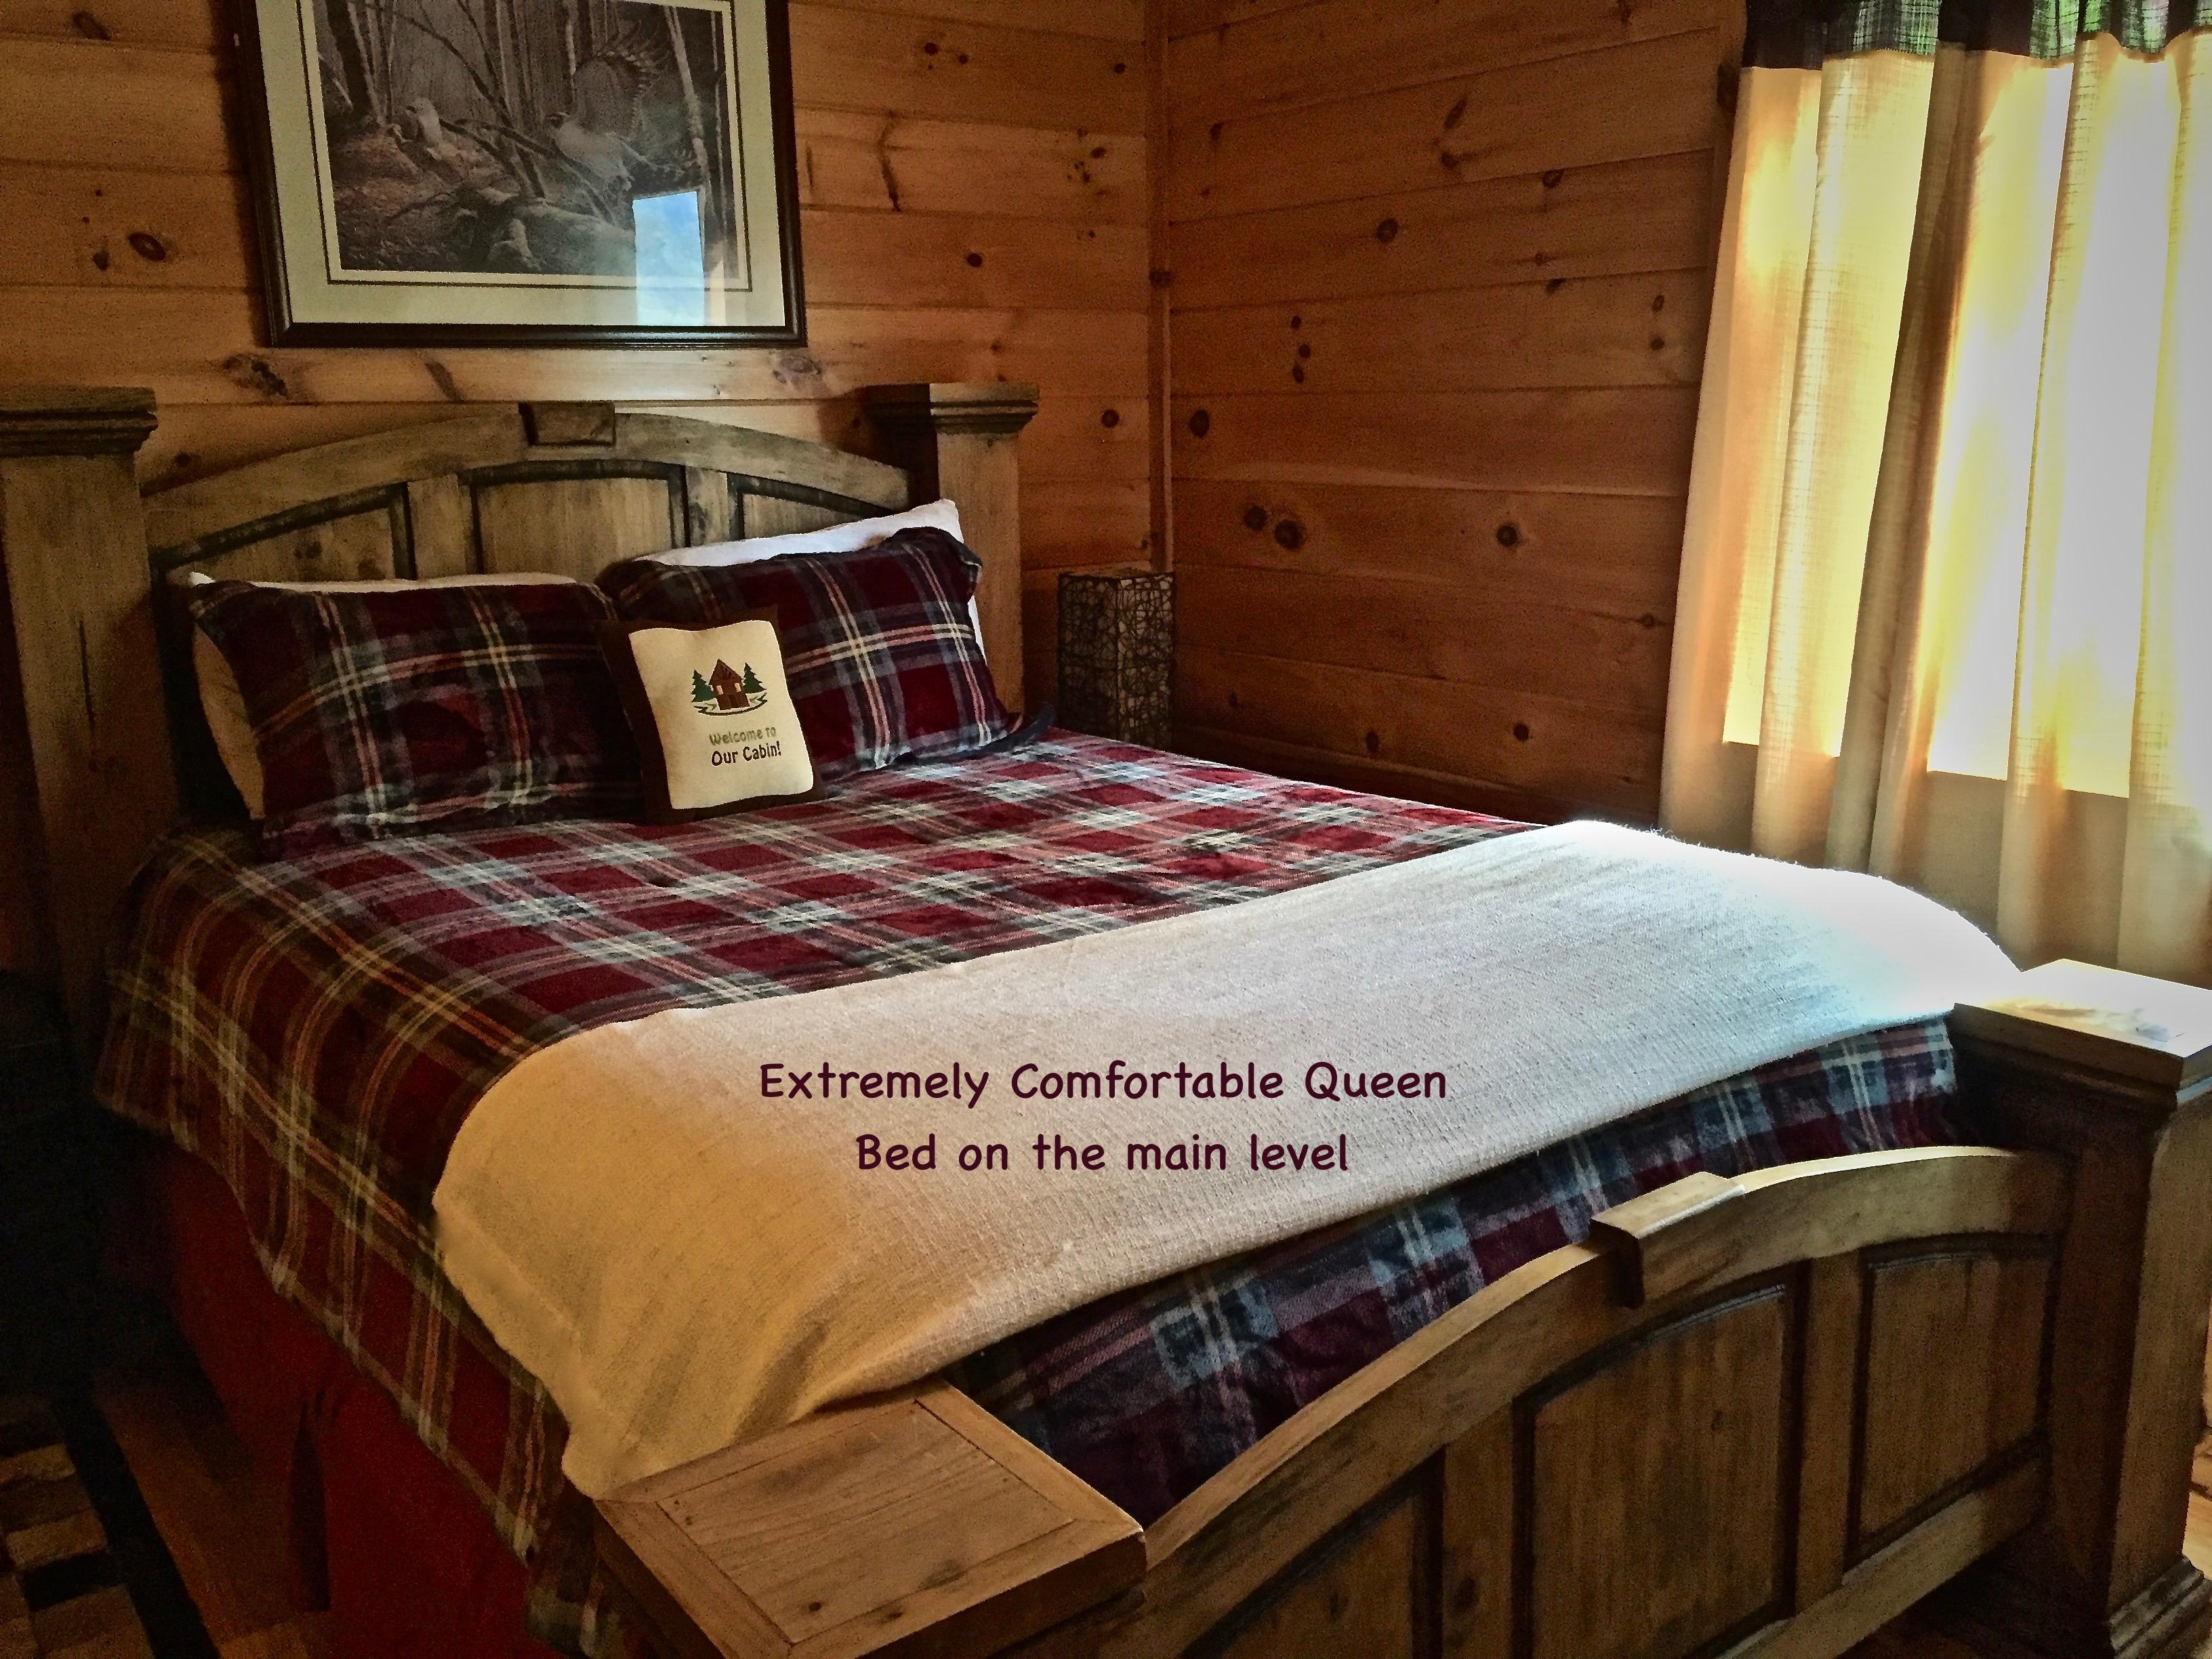 Comfortable and Updated Queen Bed on the main level